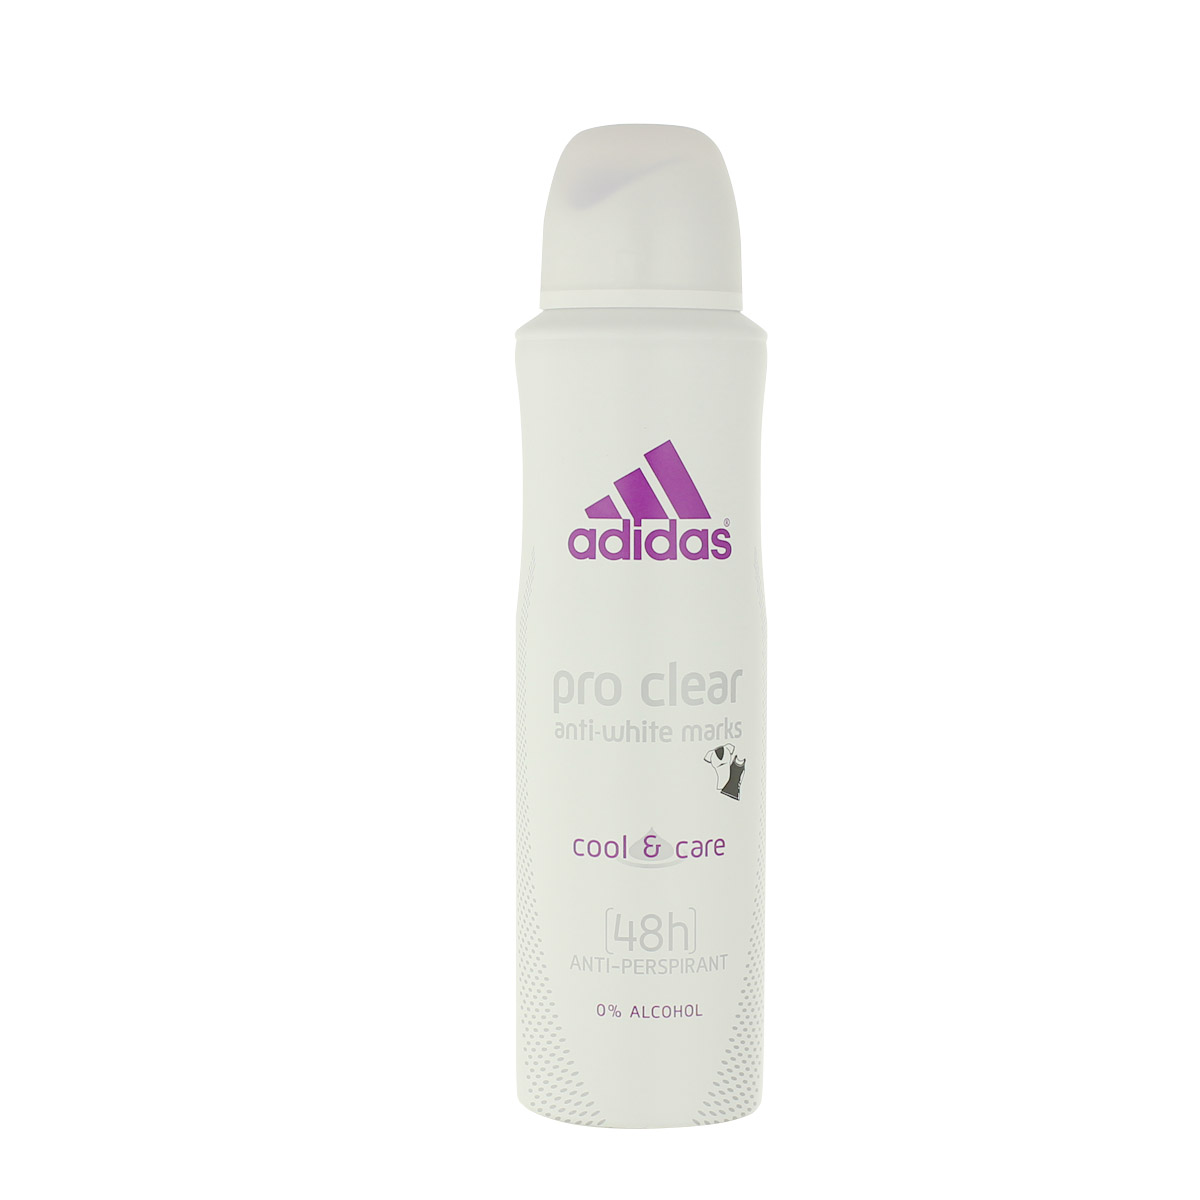 Adidas Cool and Care Pro Clear Deospray 150 ml